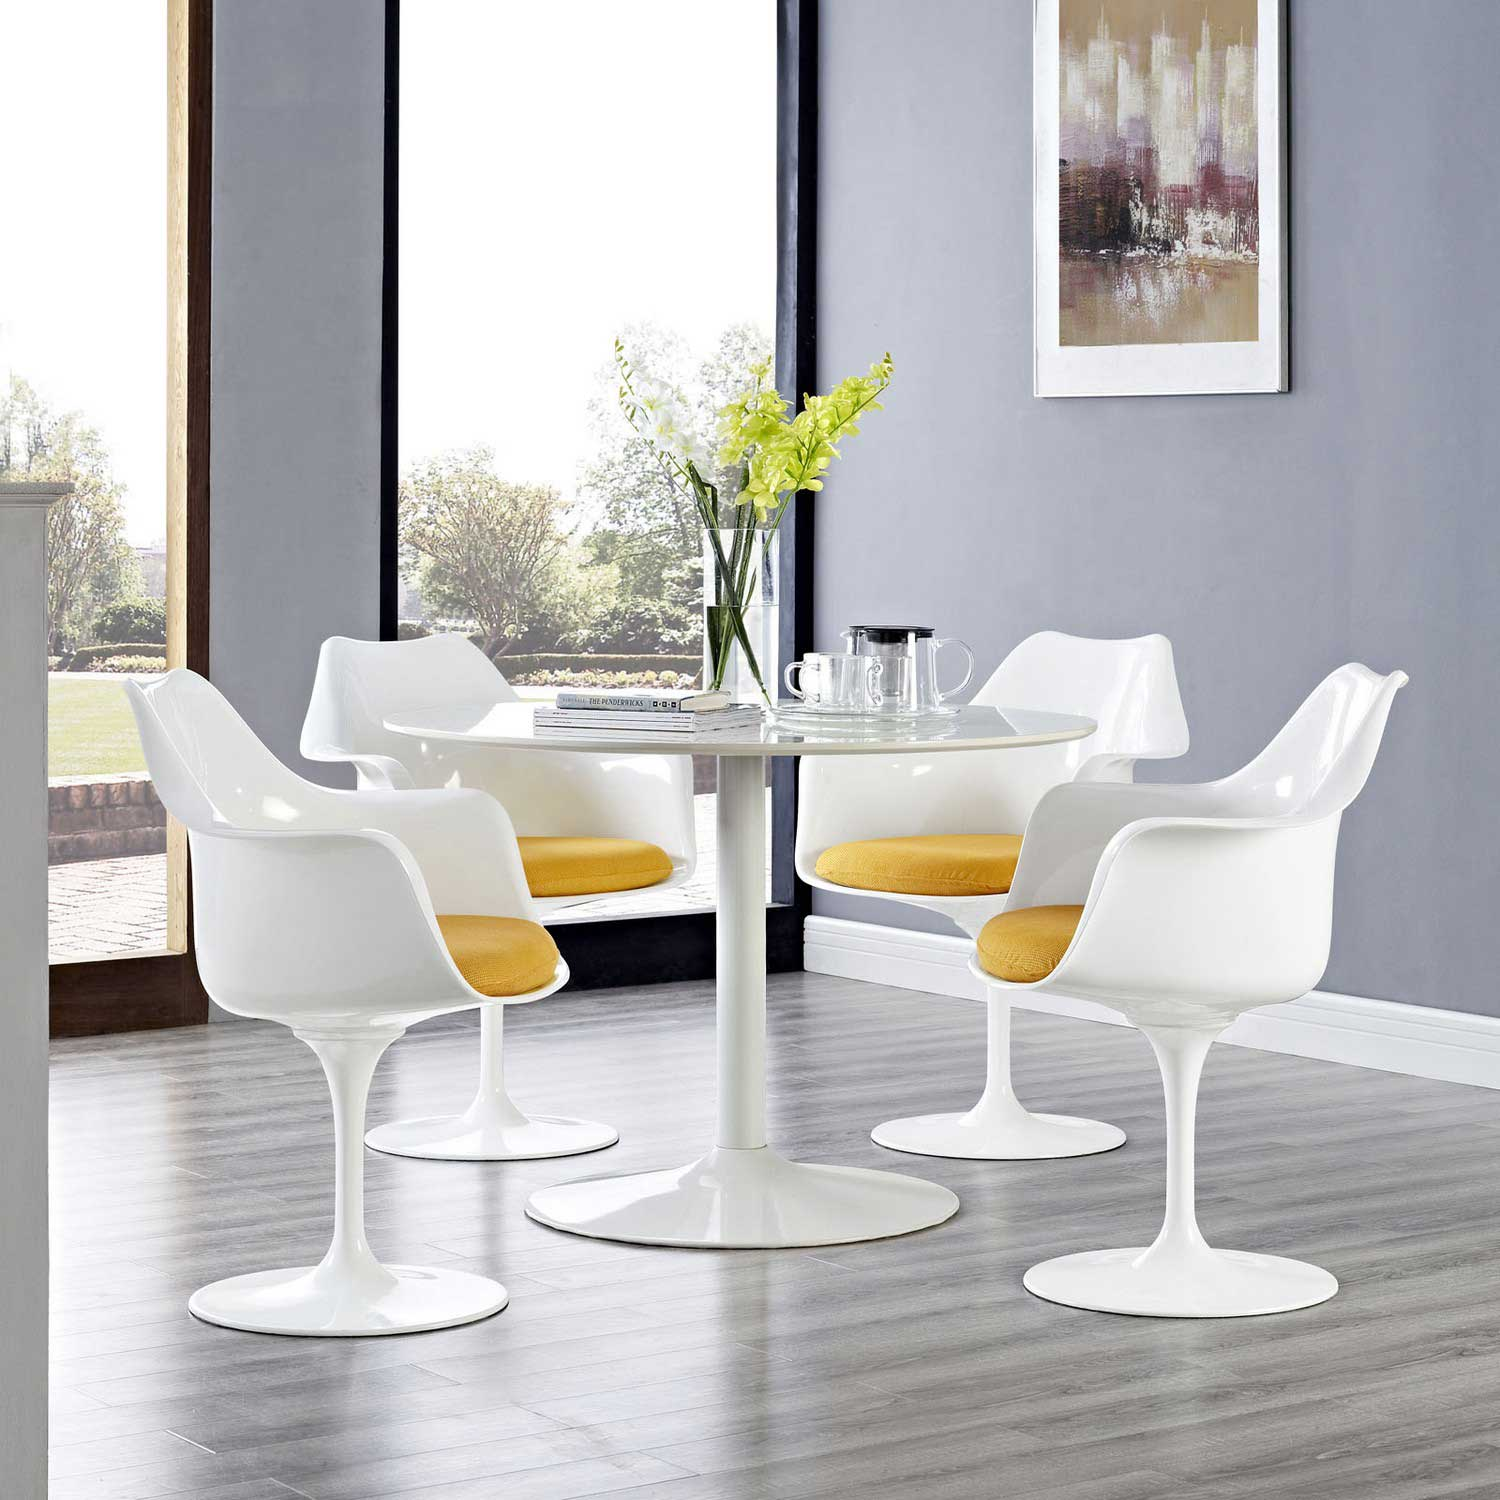 Modway Lippa Dining Armchair Set of 4 - Yellow